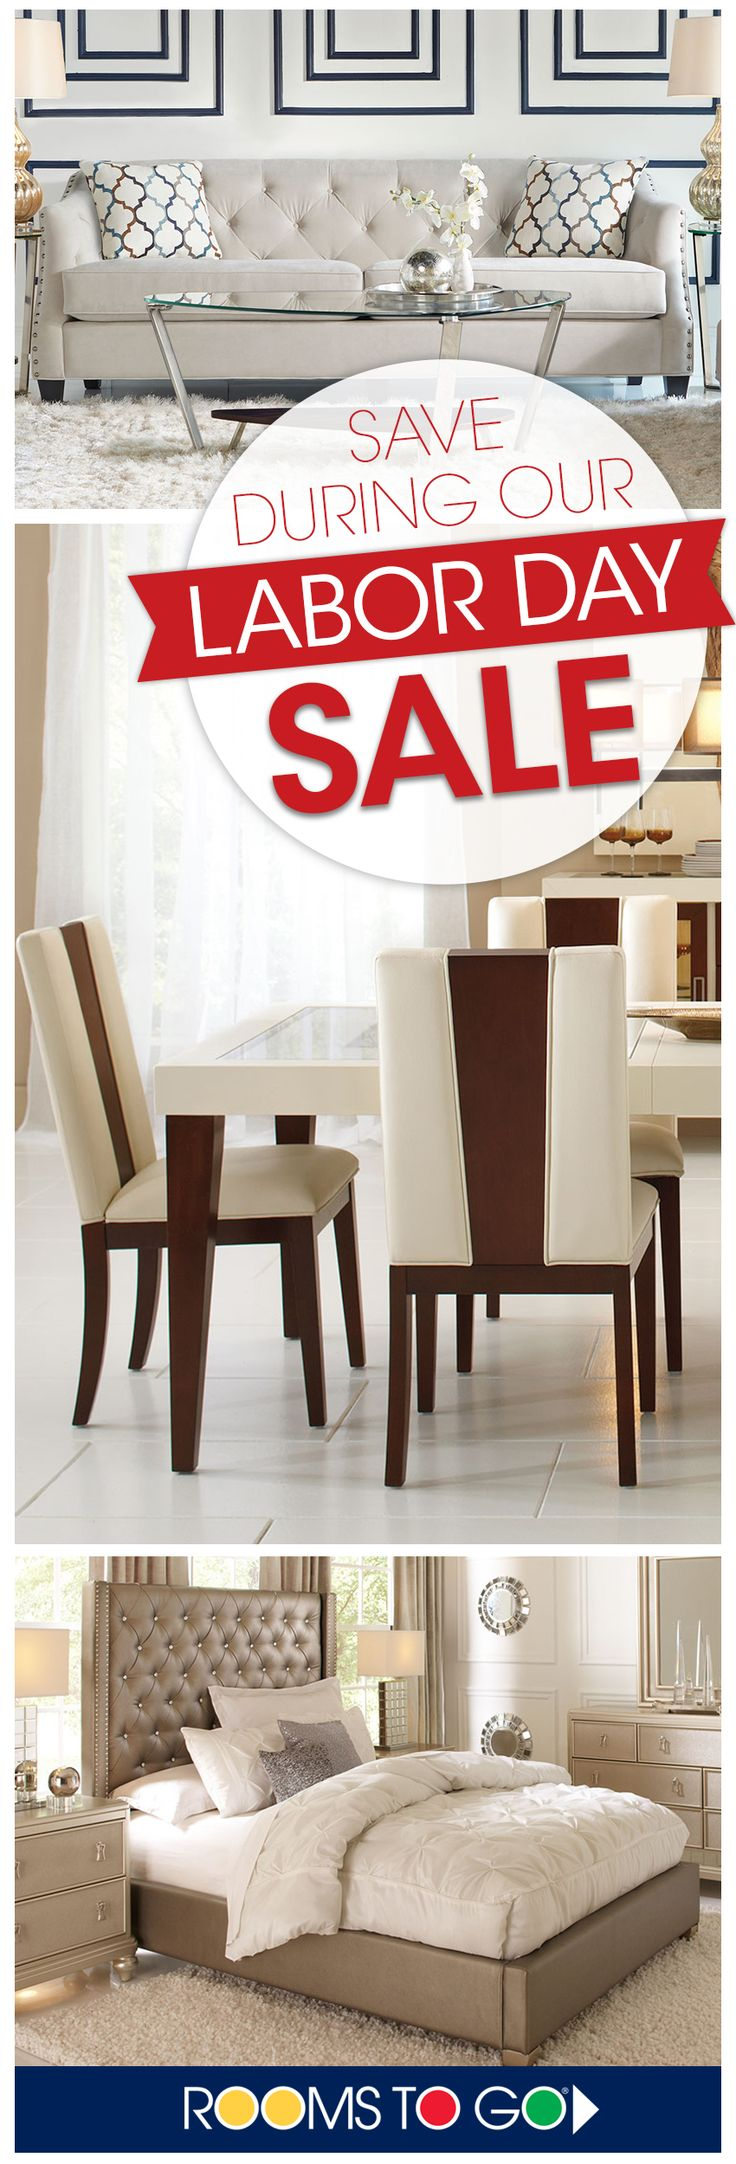 Visit Rooms To Go now during our Labor Day Sale and save